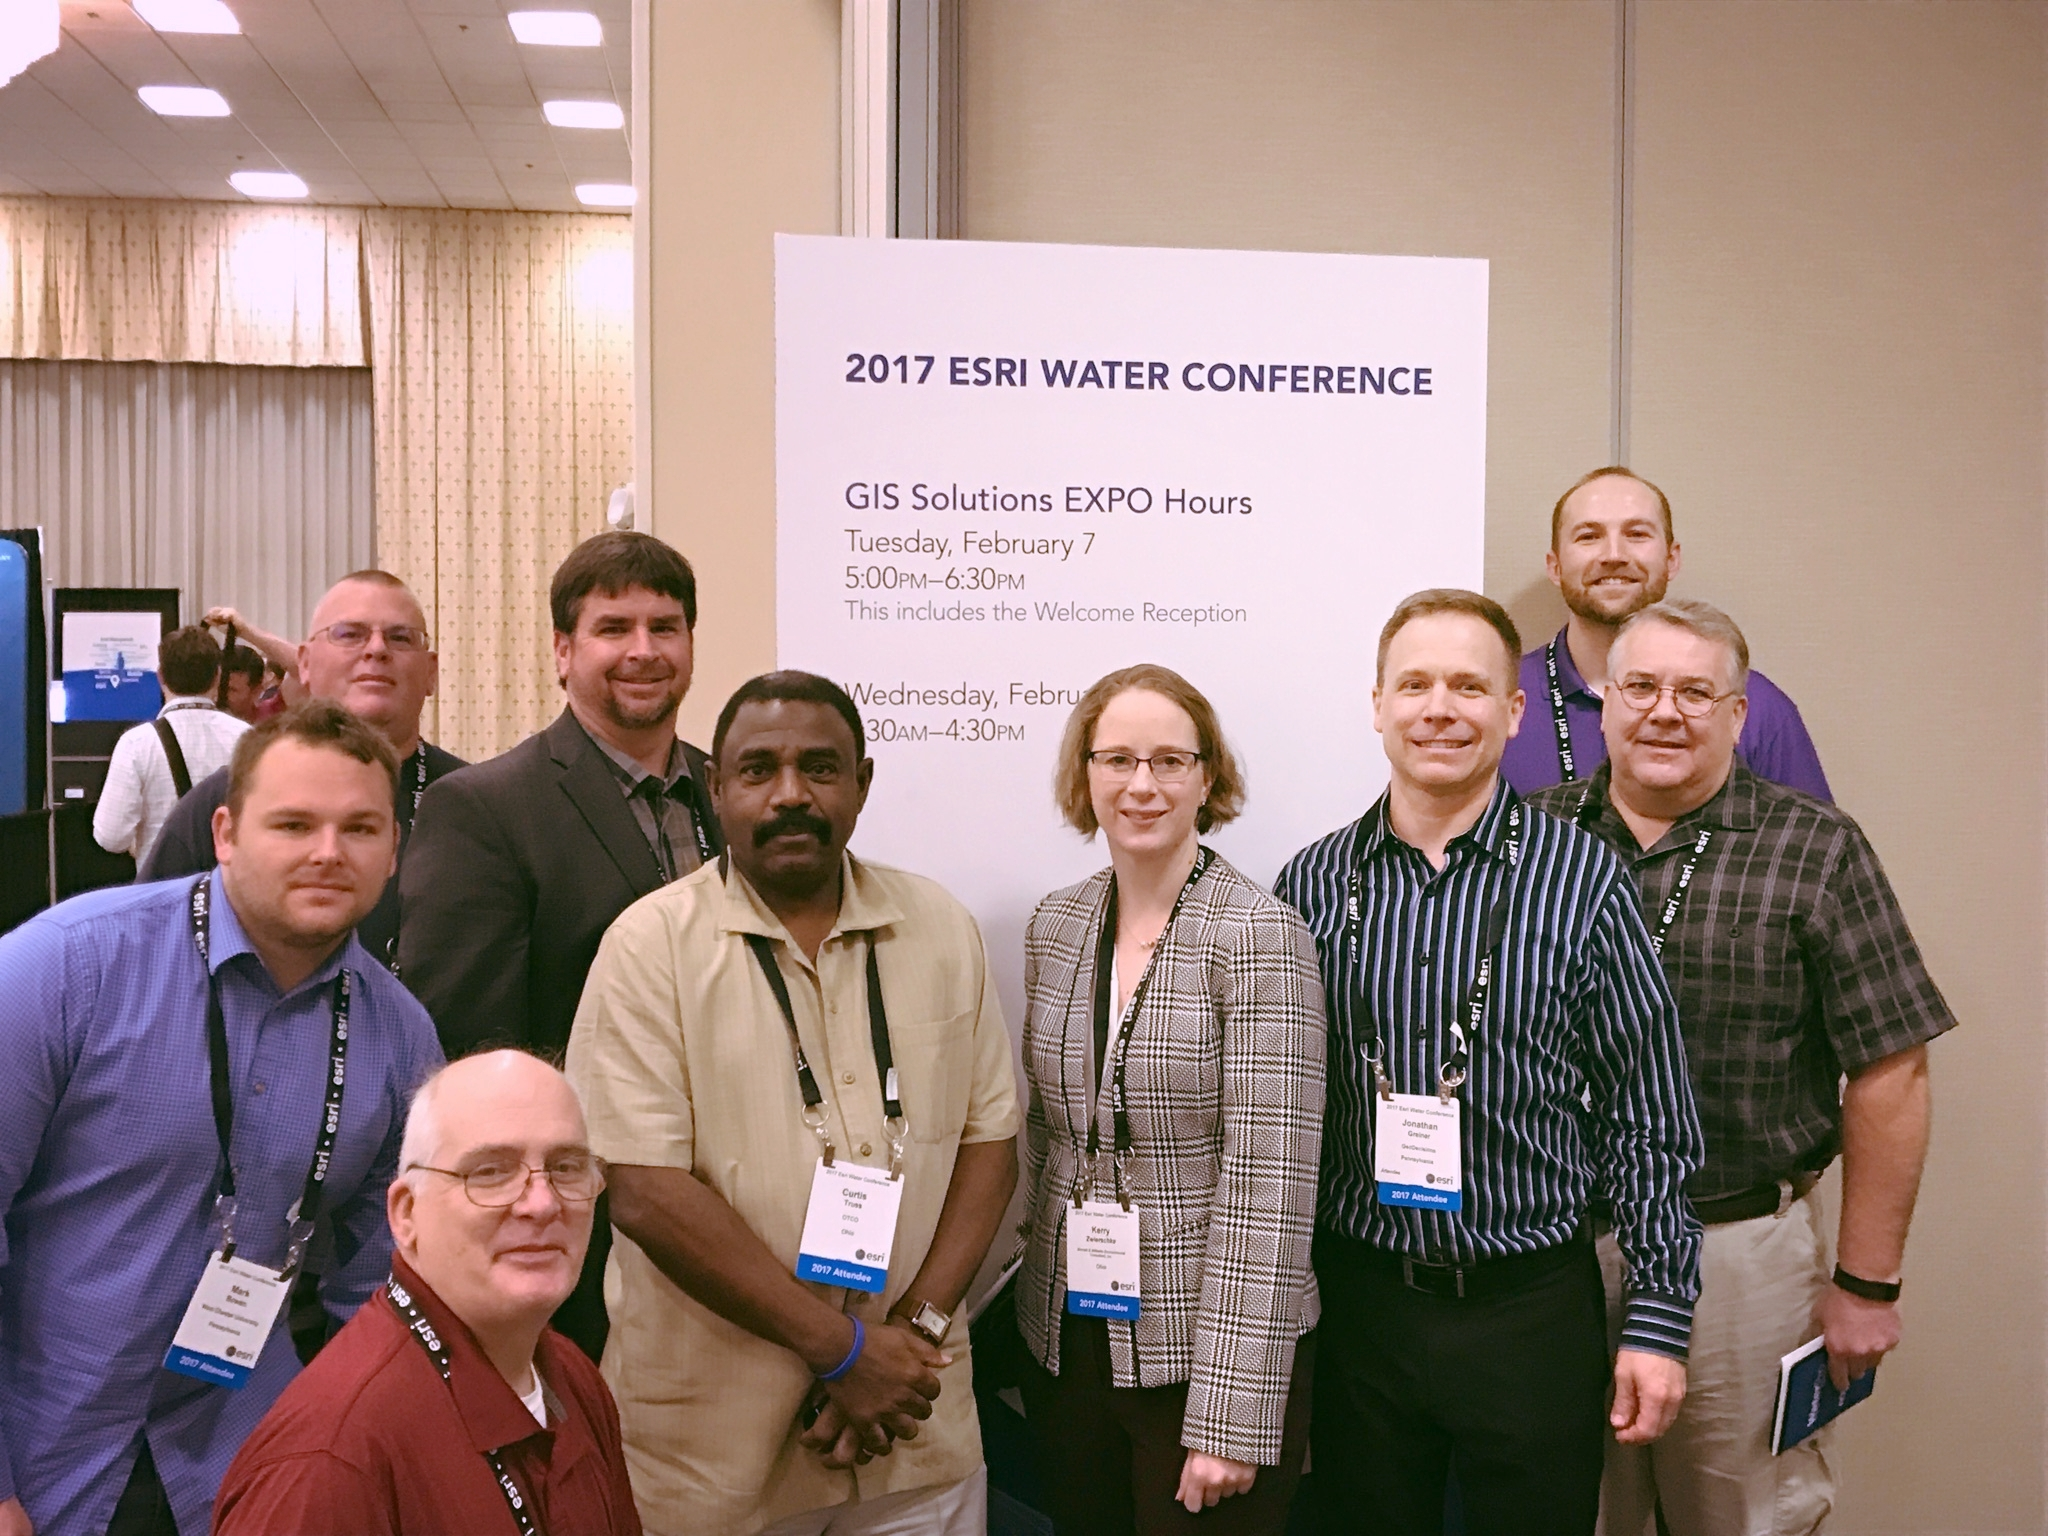 Pictured: Jonathan Greiner, Project Manager/ GeoDecisions Notify Lead (third from right) at the 2017 Esri Water Conference with conference attendees.